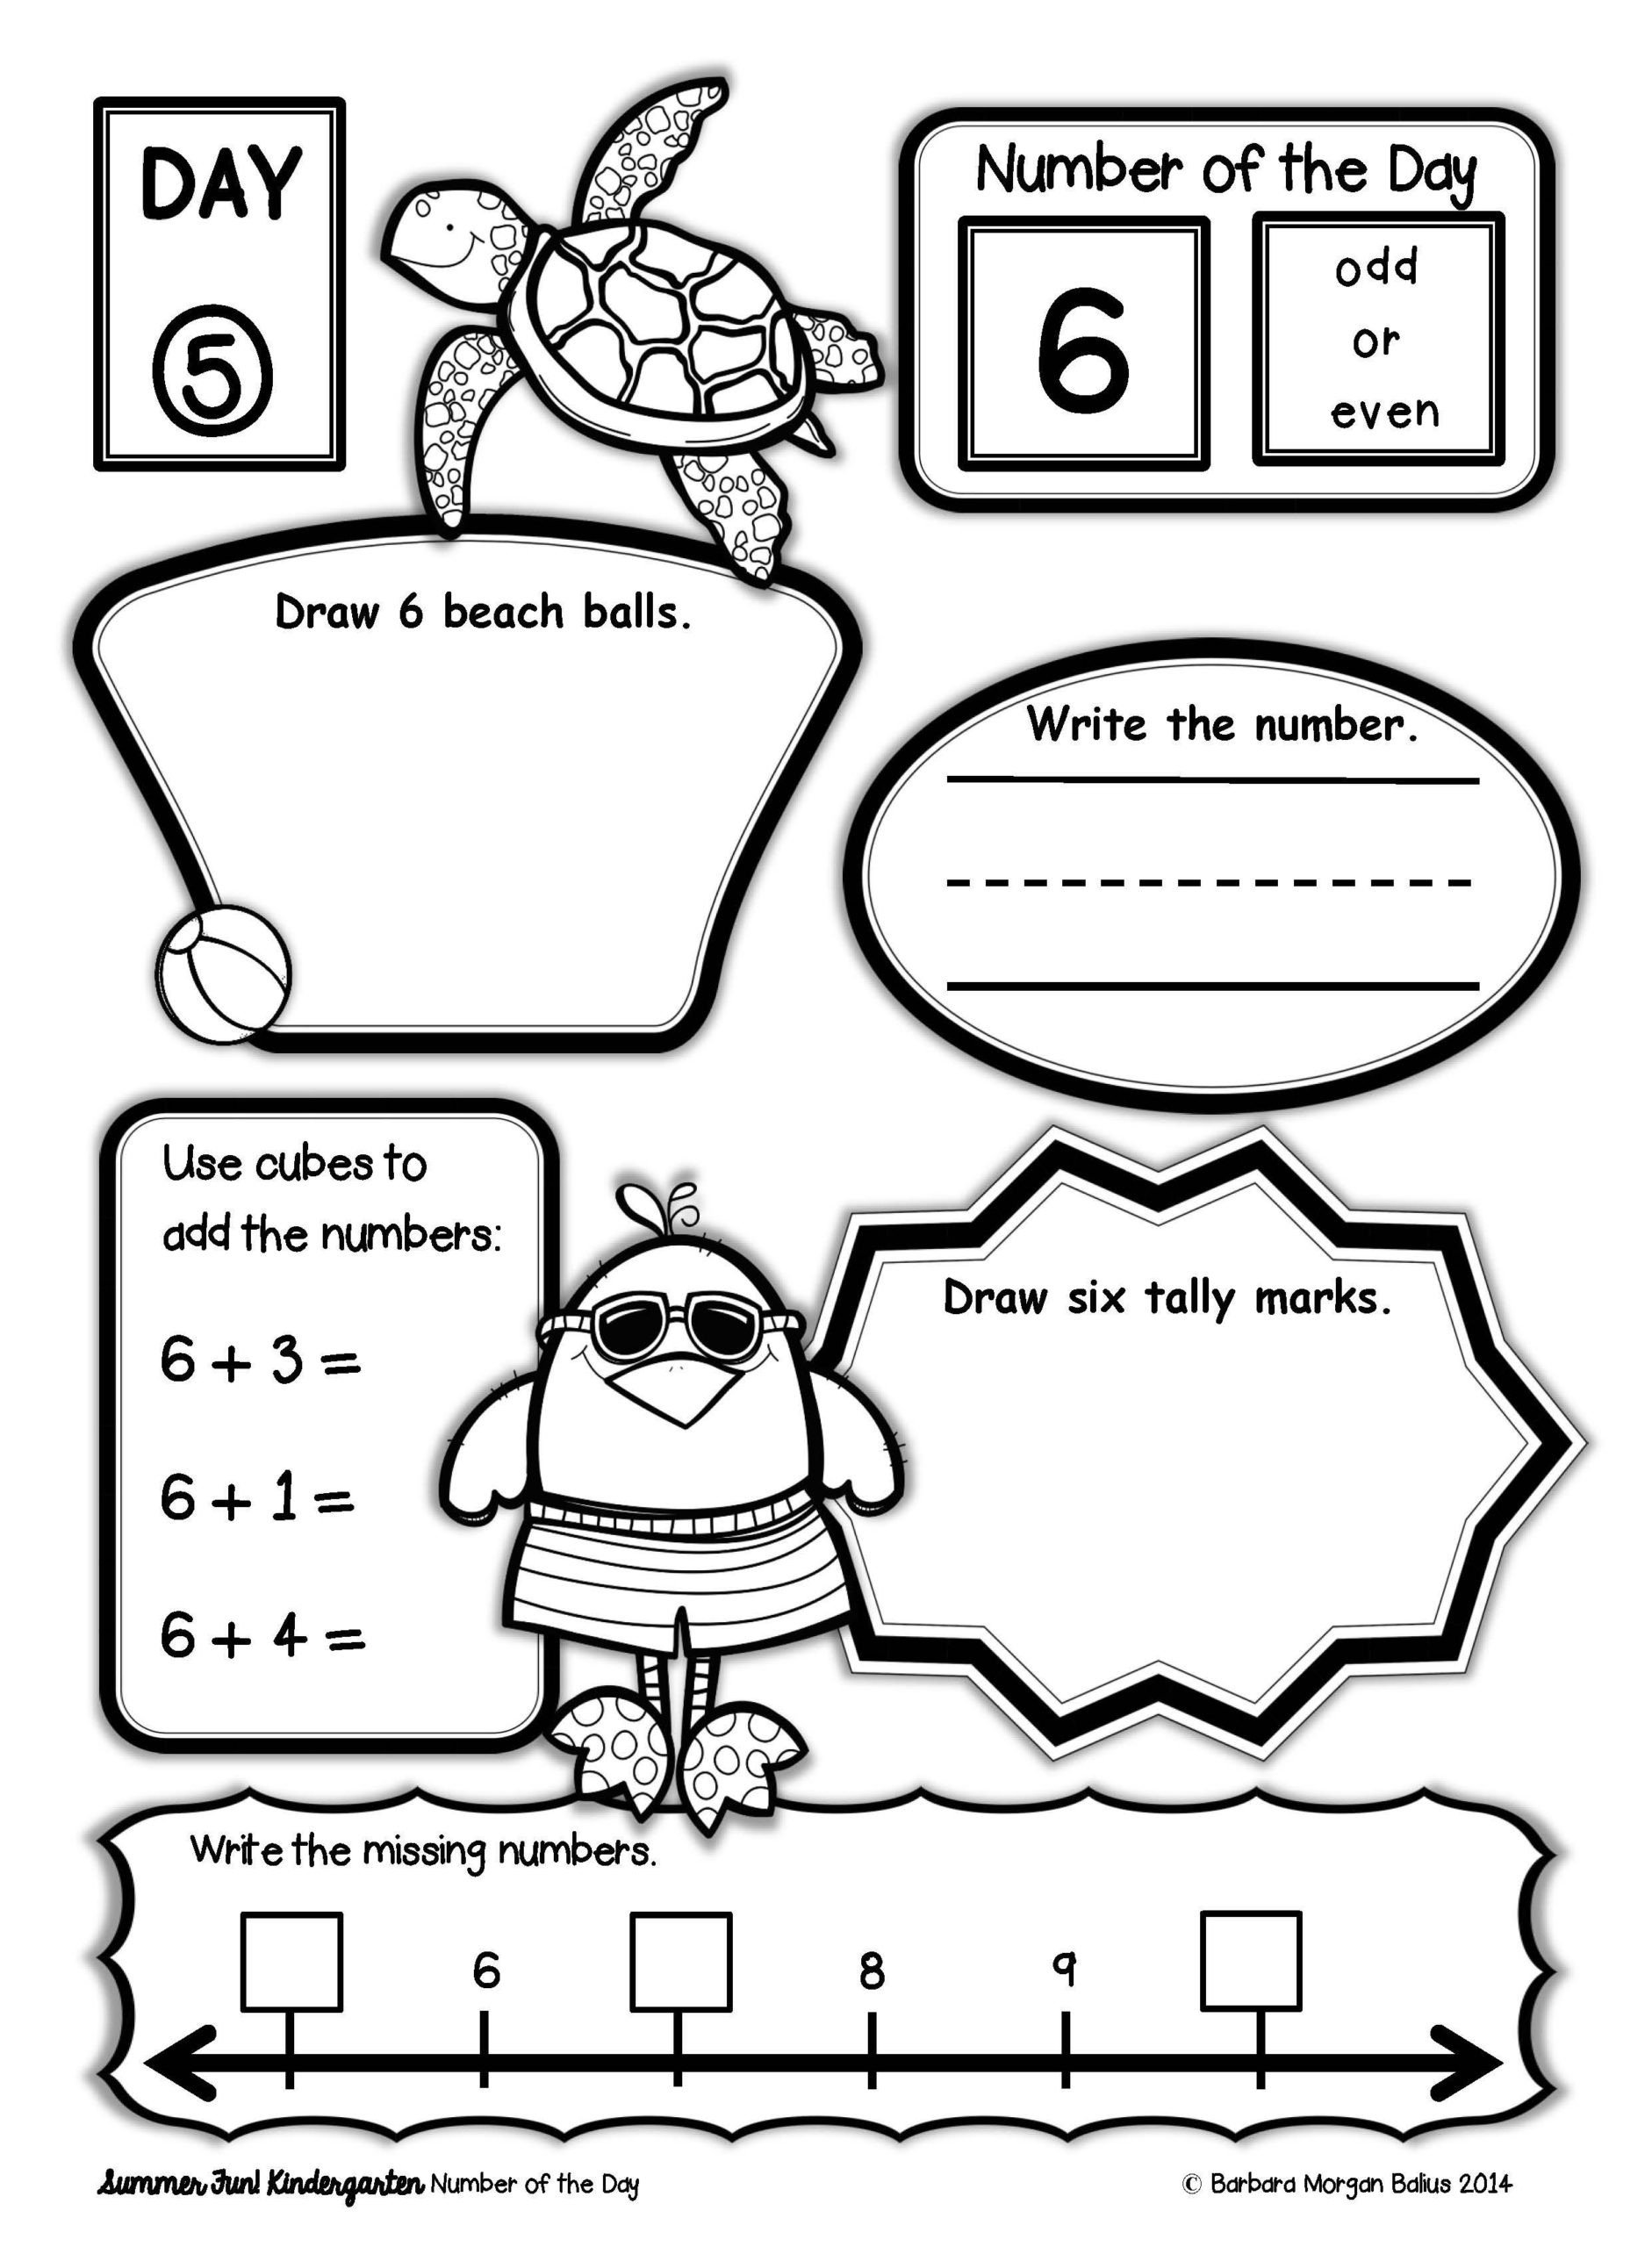 Kindergarten Tally Marks Worksheet Math Websites for Grade 6 Baseball Worksheets Printable